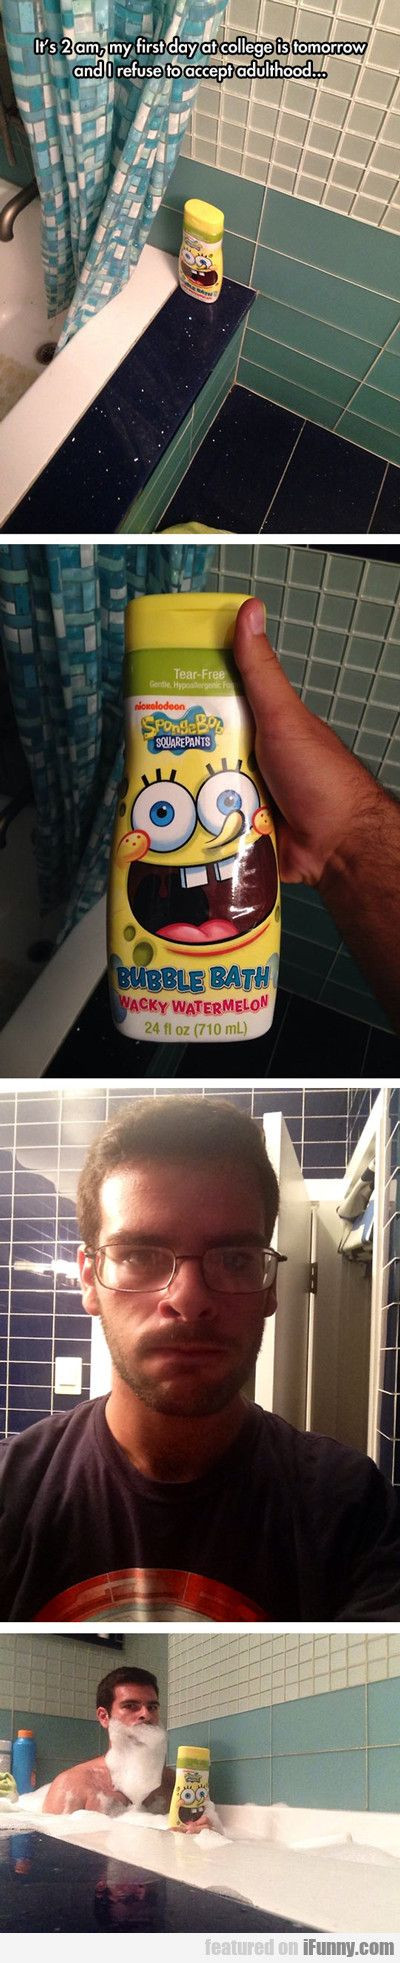 It's 2 am, my first day of college is tomorrow and I refuse to accept adulthood... | SpongeBob SquarePants Bubble Bath Wacky Watermelon | *soap beard*